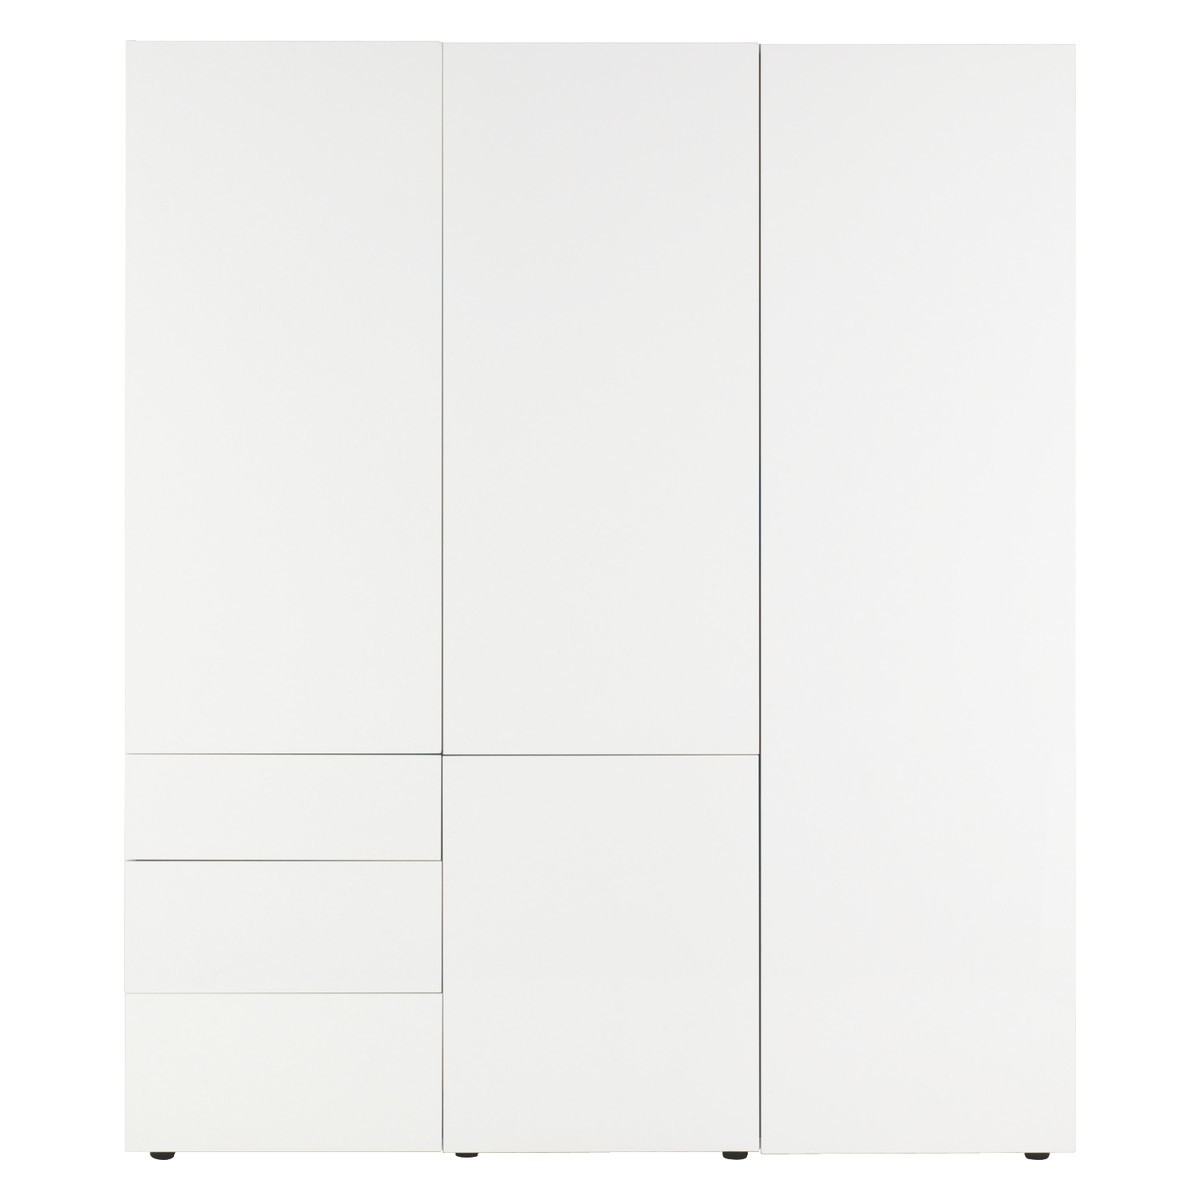 Perouse White 3 Door Wardrobe 180Cm Width (View 12 of 15)